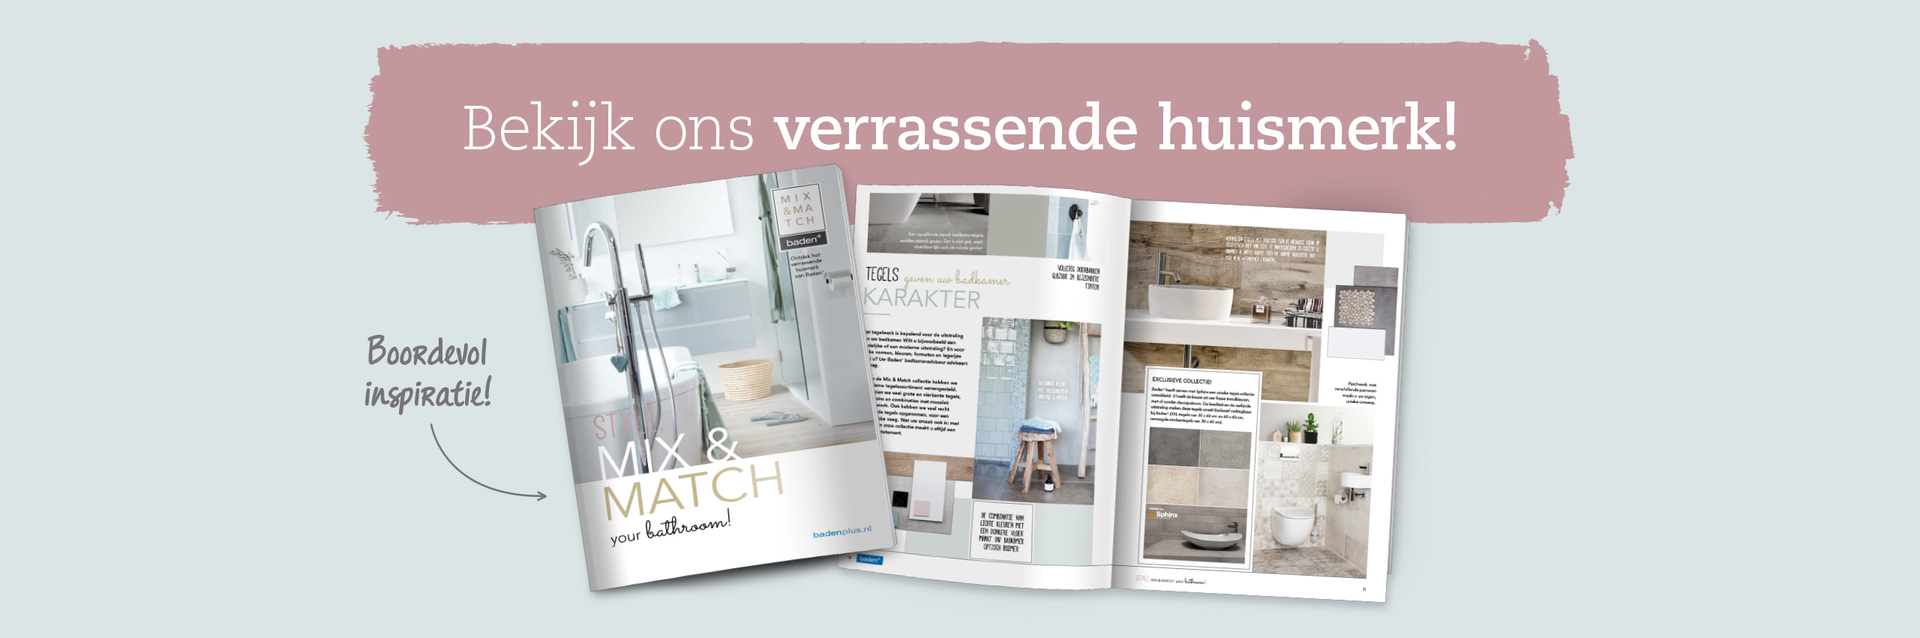 Mix & Match huismerkbrochure - Mix & Match huismerkbrochure